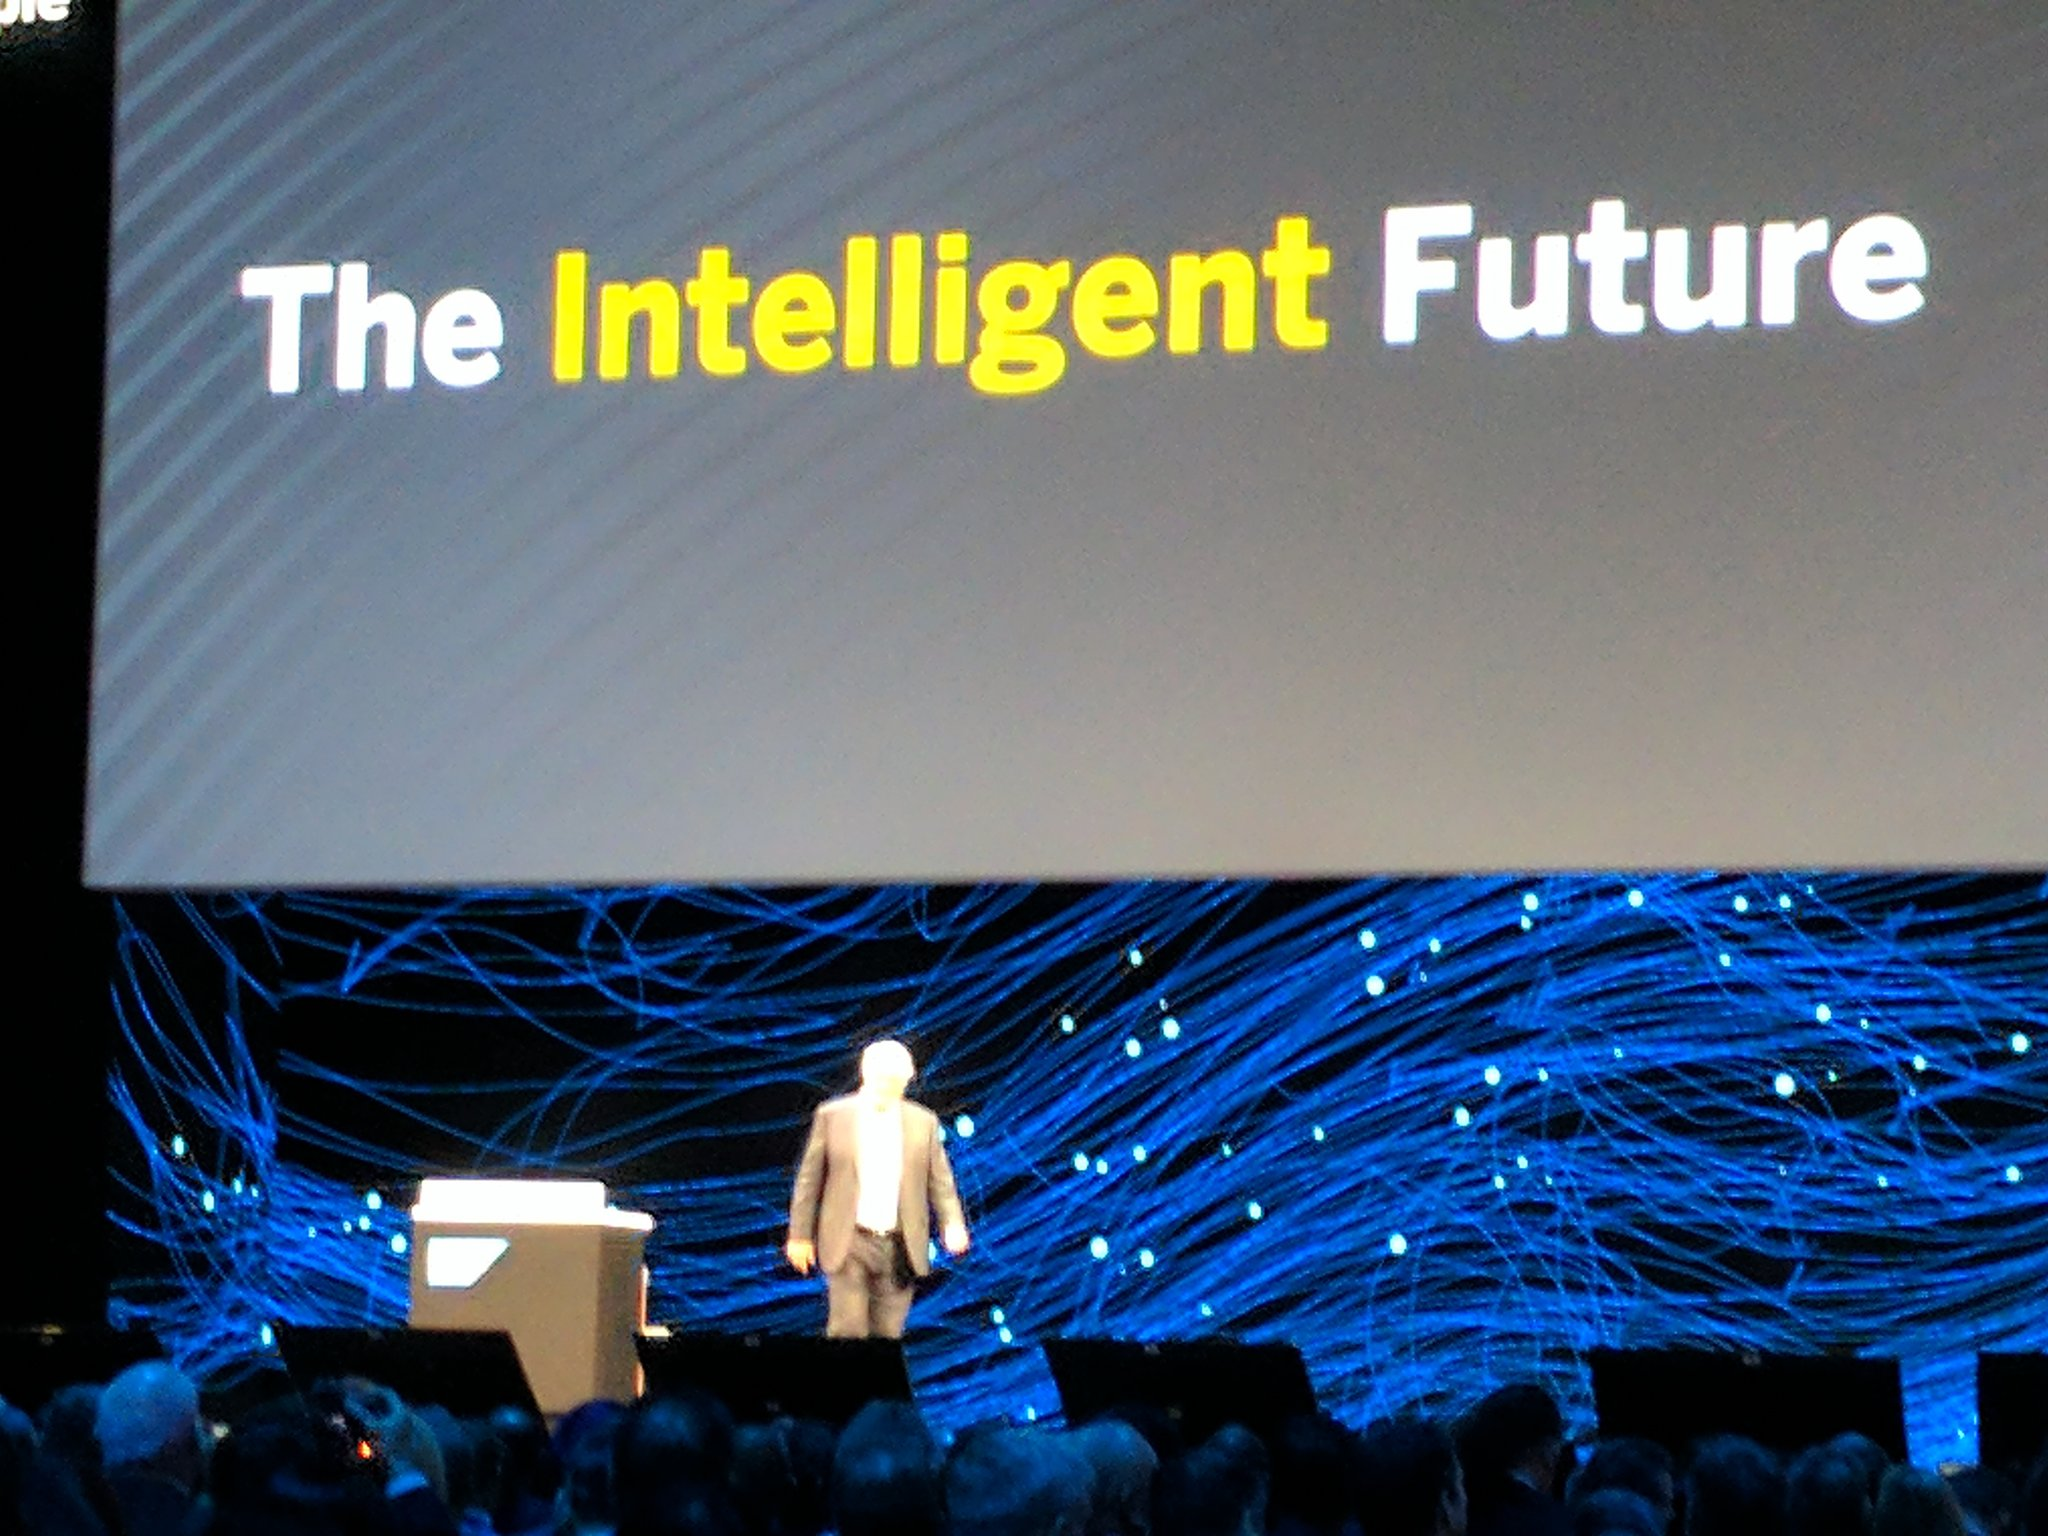 And we are of with the Intelligent Future with Hasso Platter #SAPPHIRENOW https://t.co/Yrv2Qb9Epd